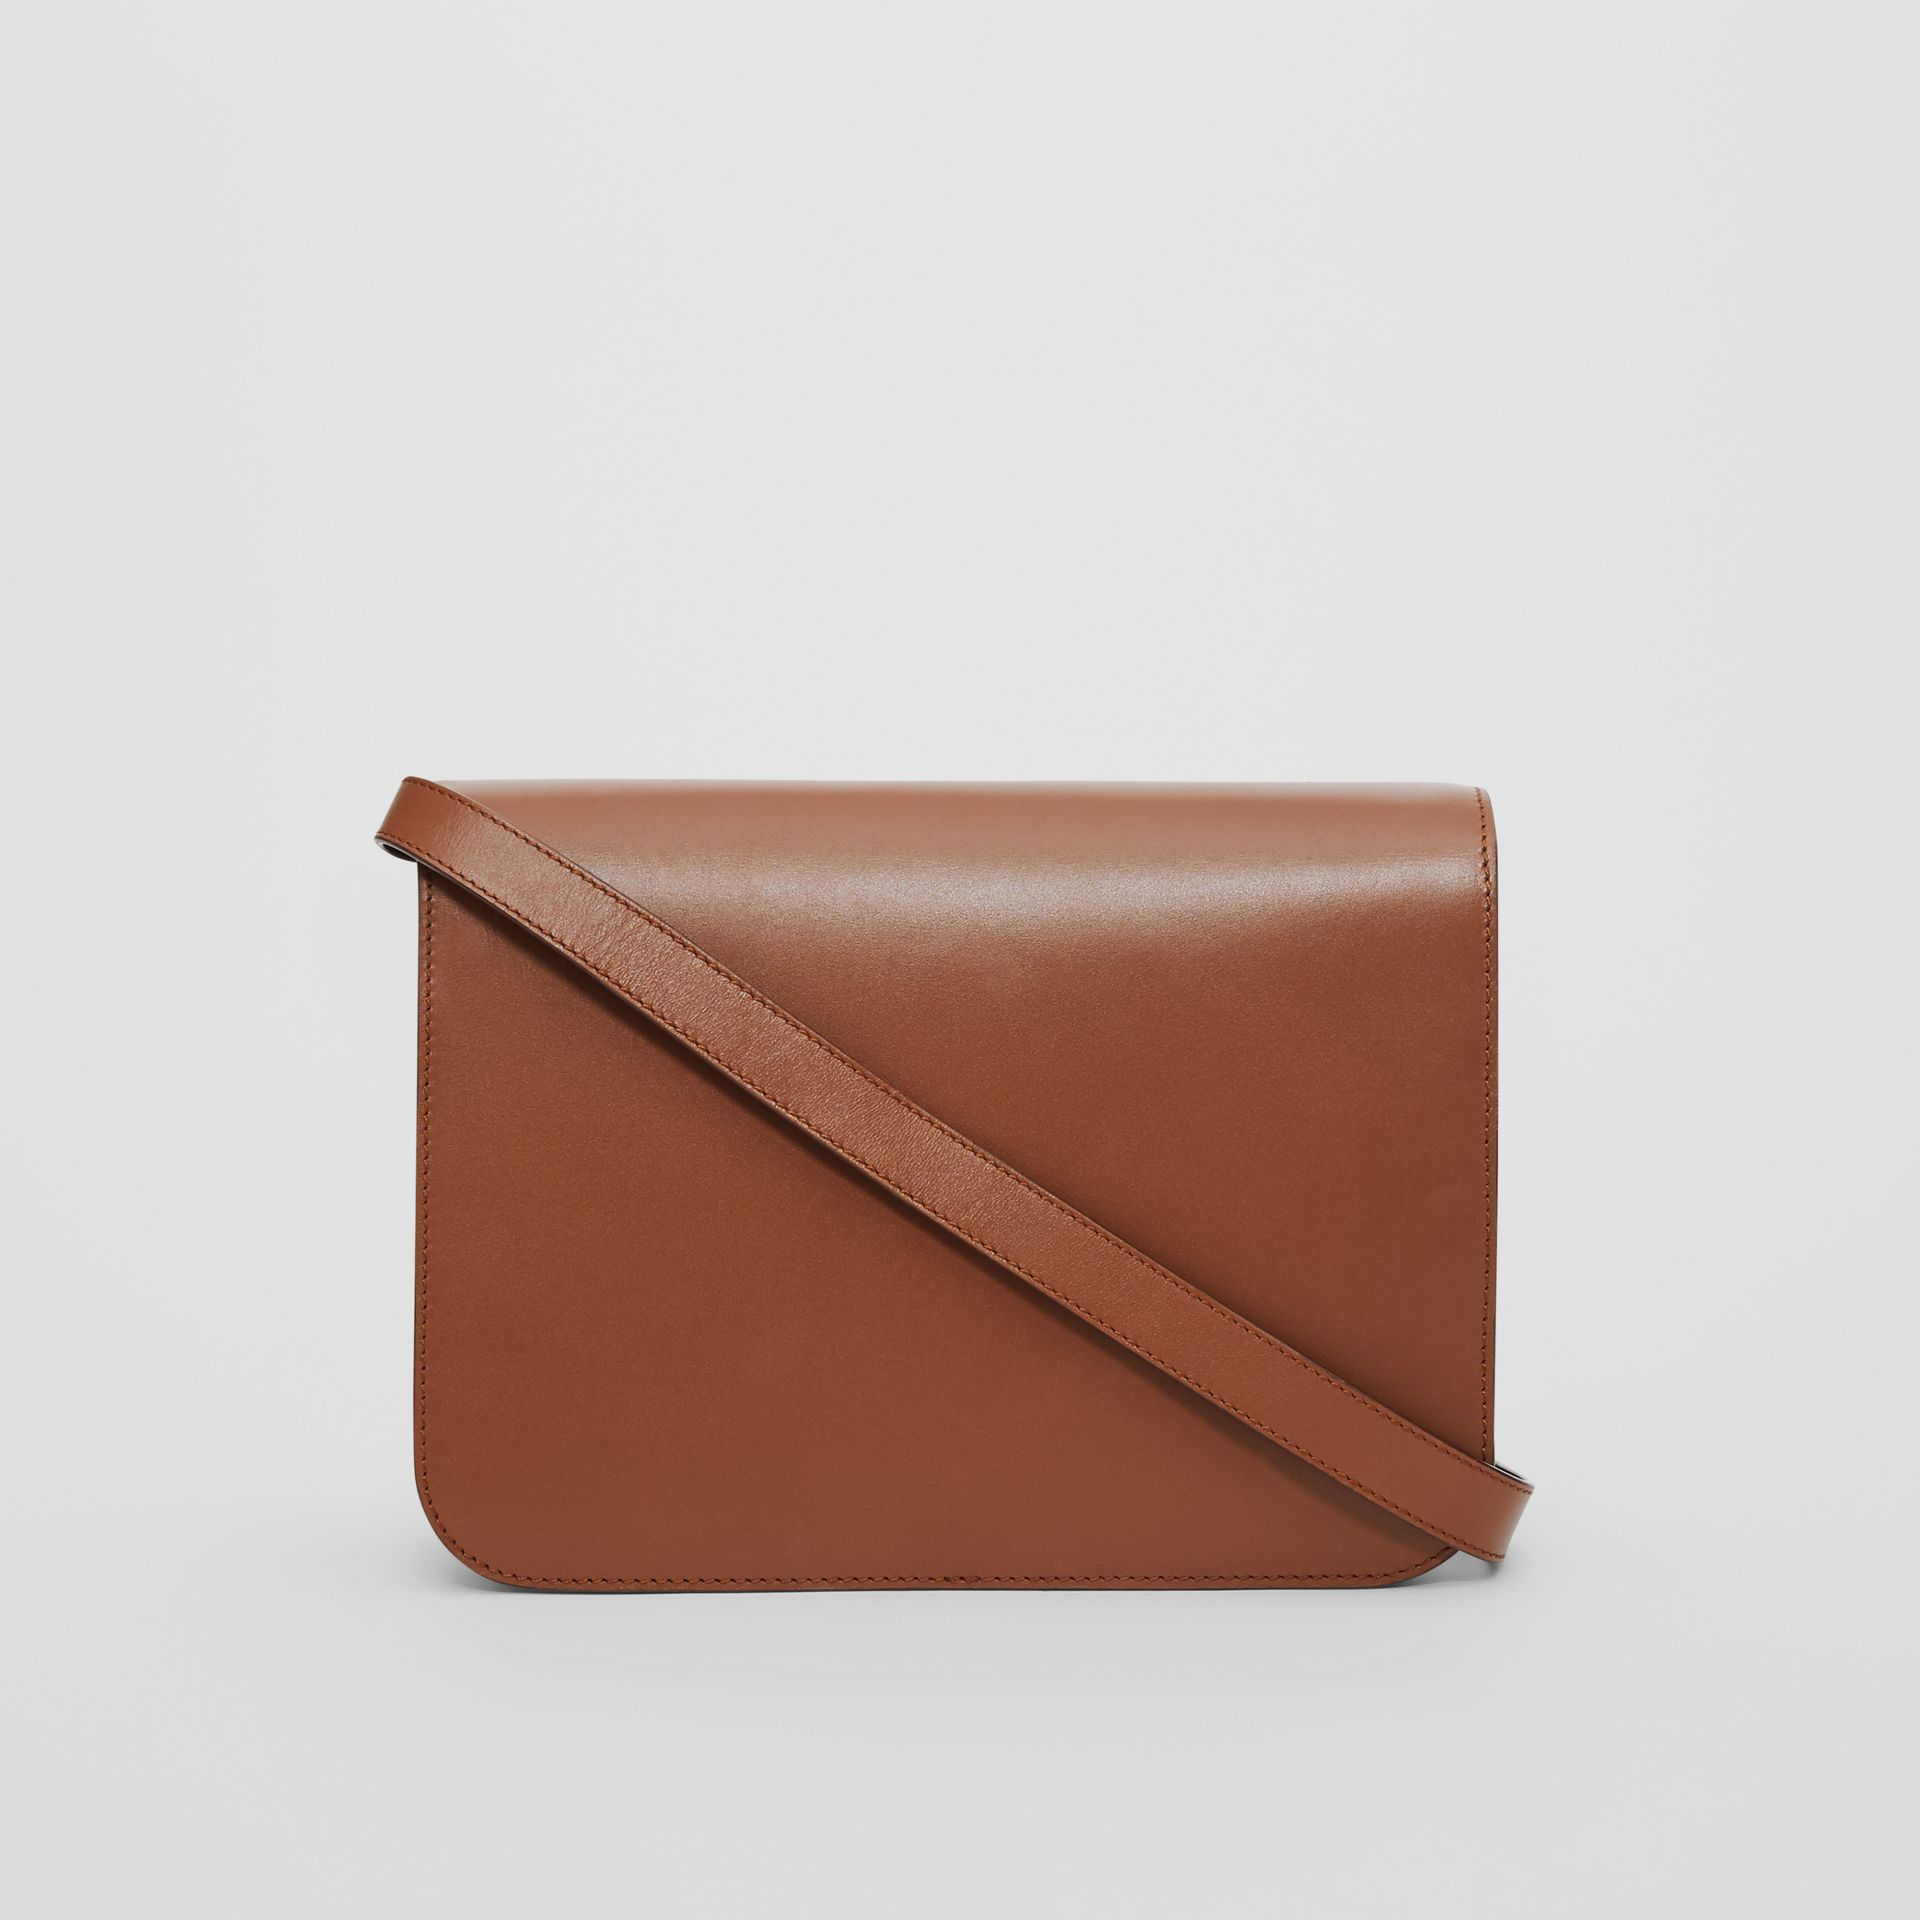 Medium Leather TB Bag in Malt Brown - Women | Burberry Canada - gallery image 7